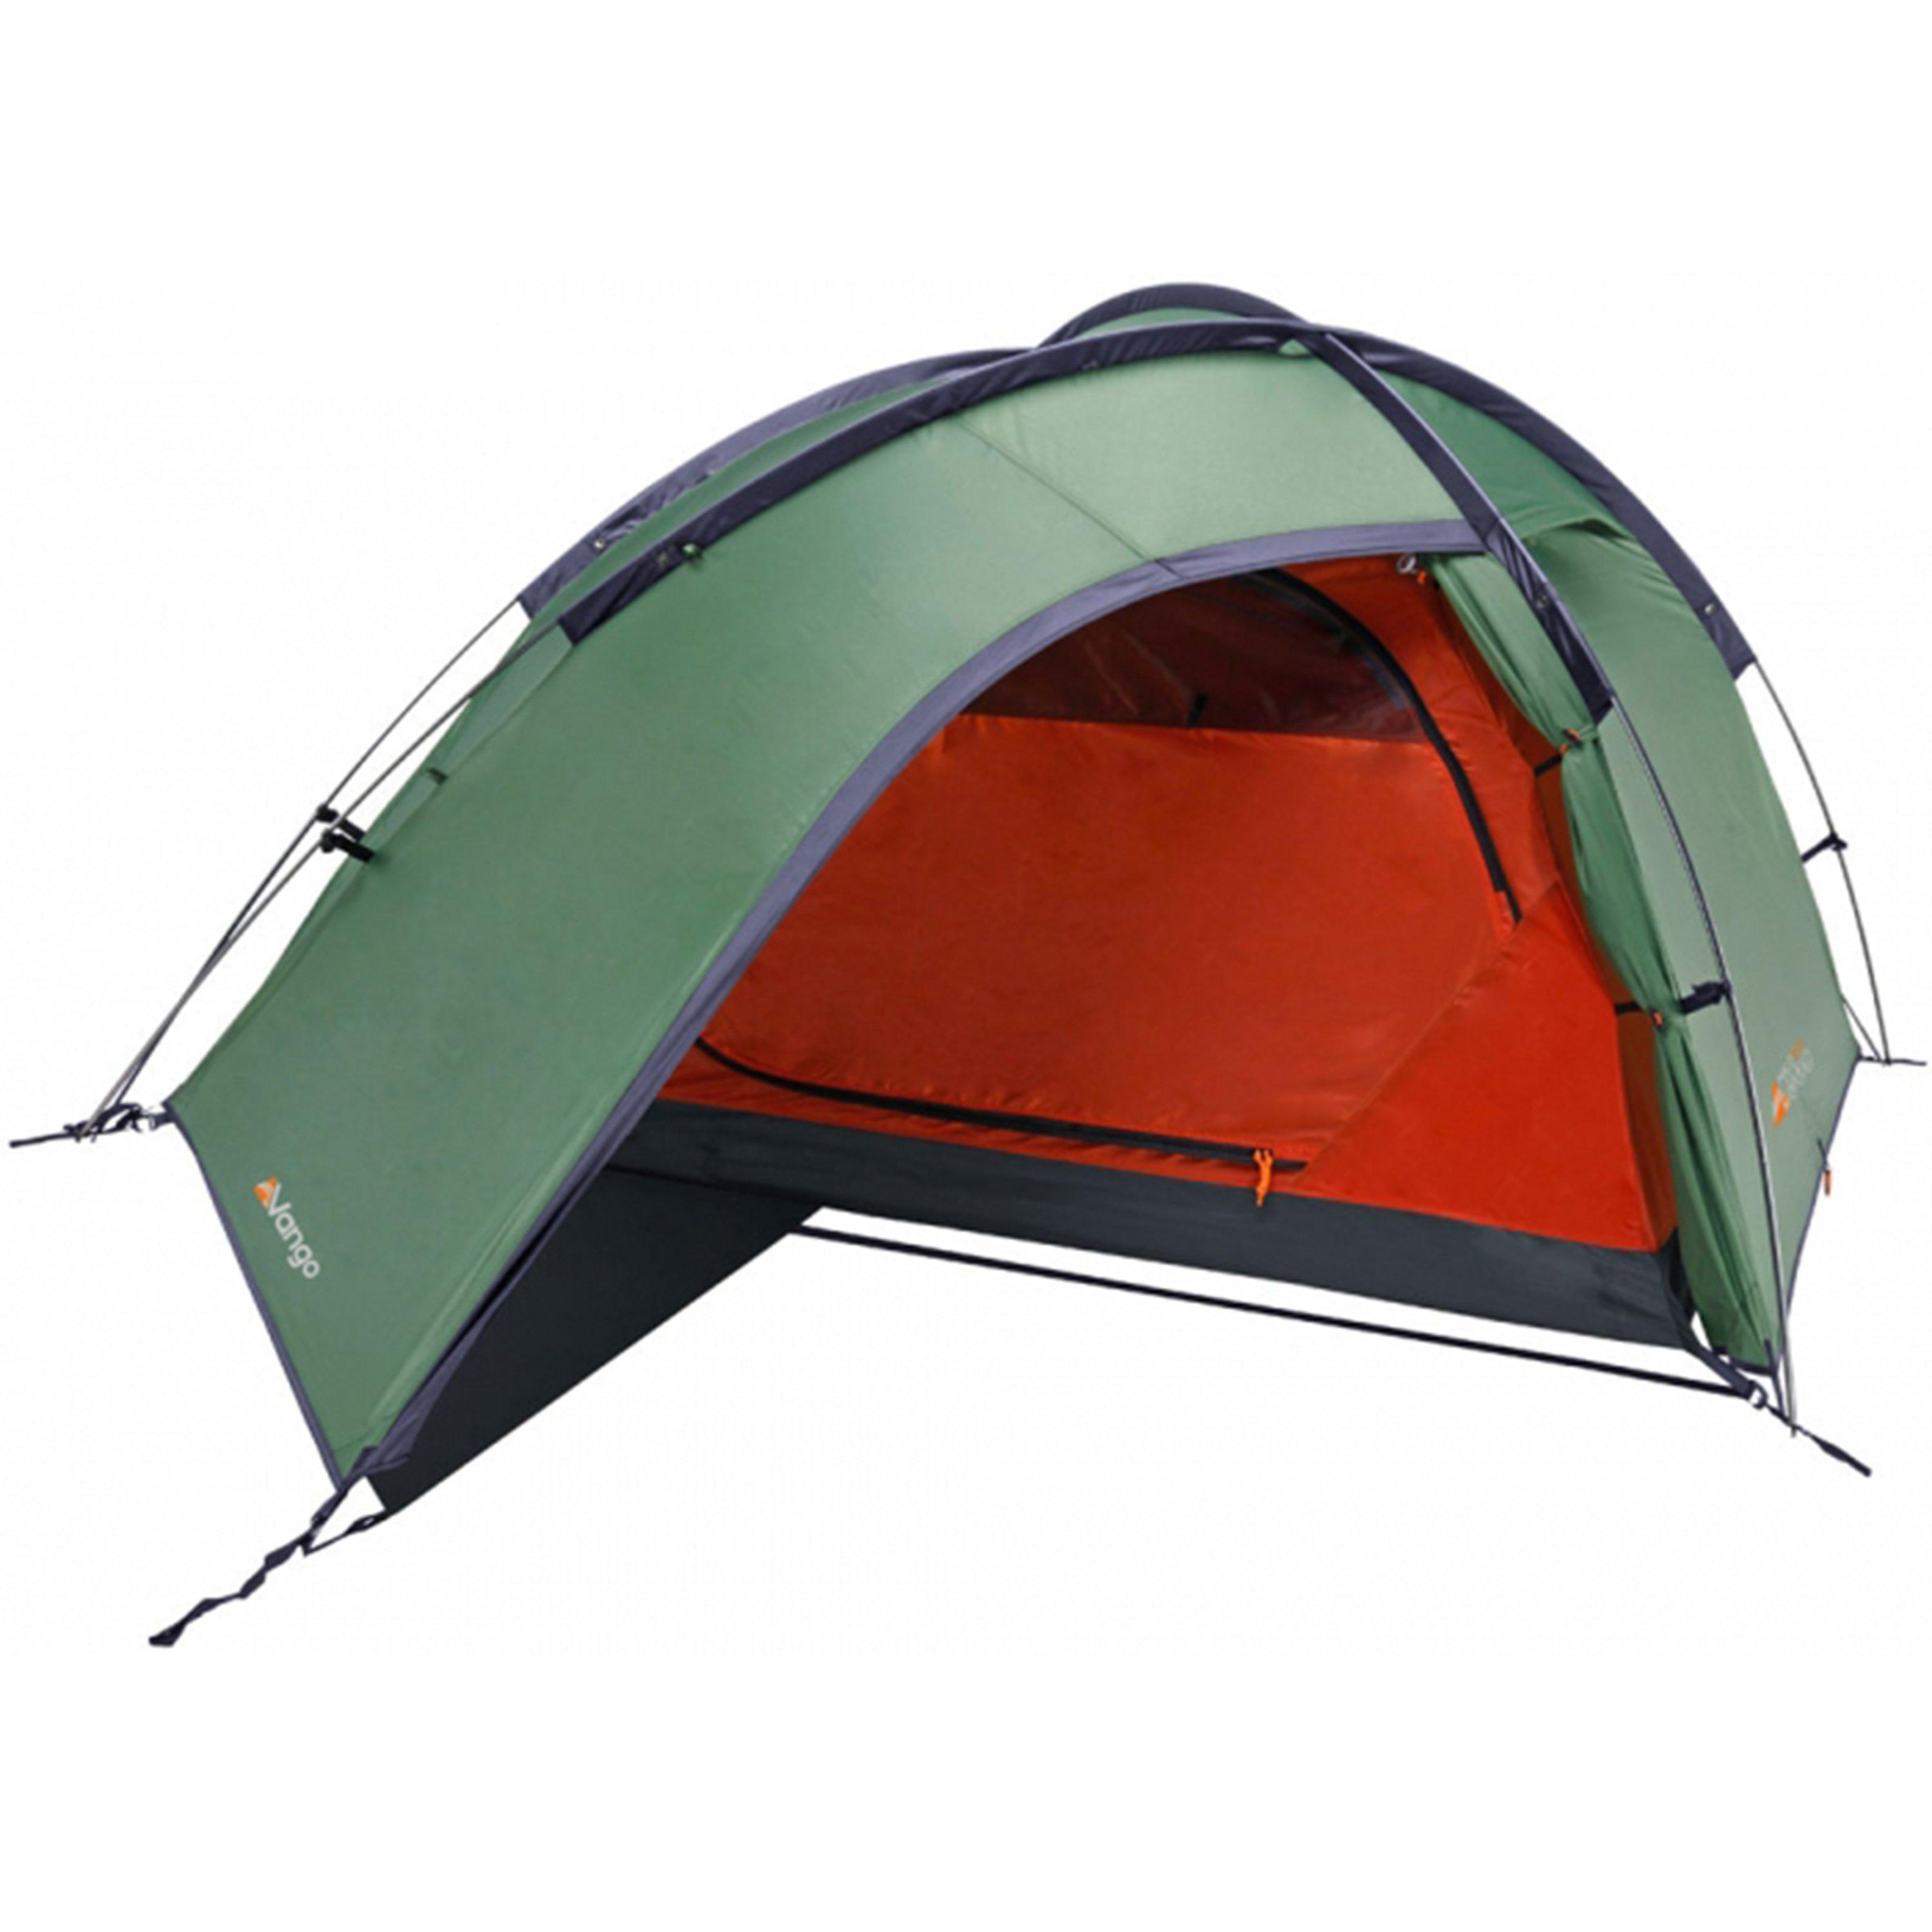 3000x3000 Halo 300 3 Man Technical Tent Camping Tents